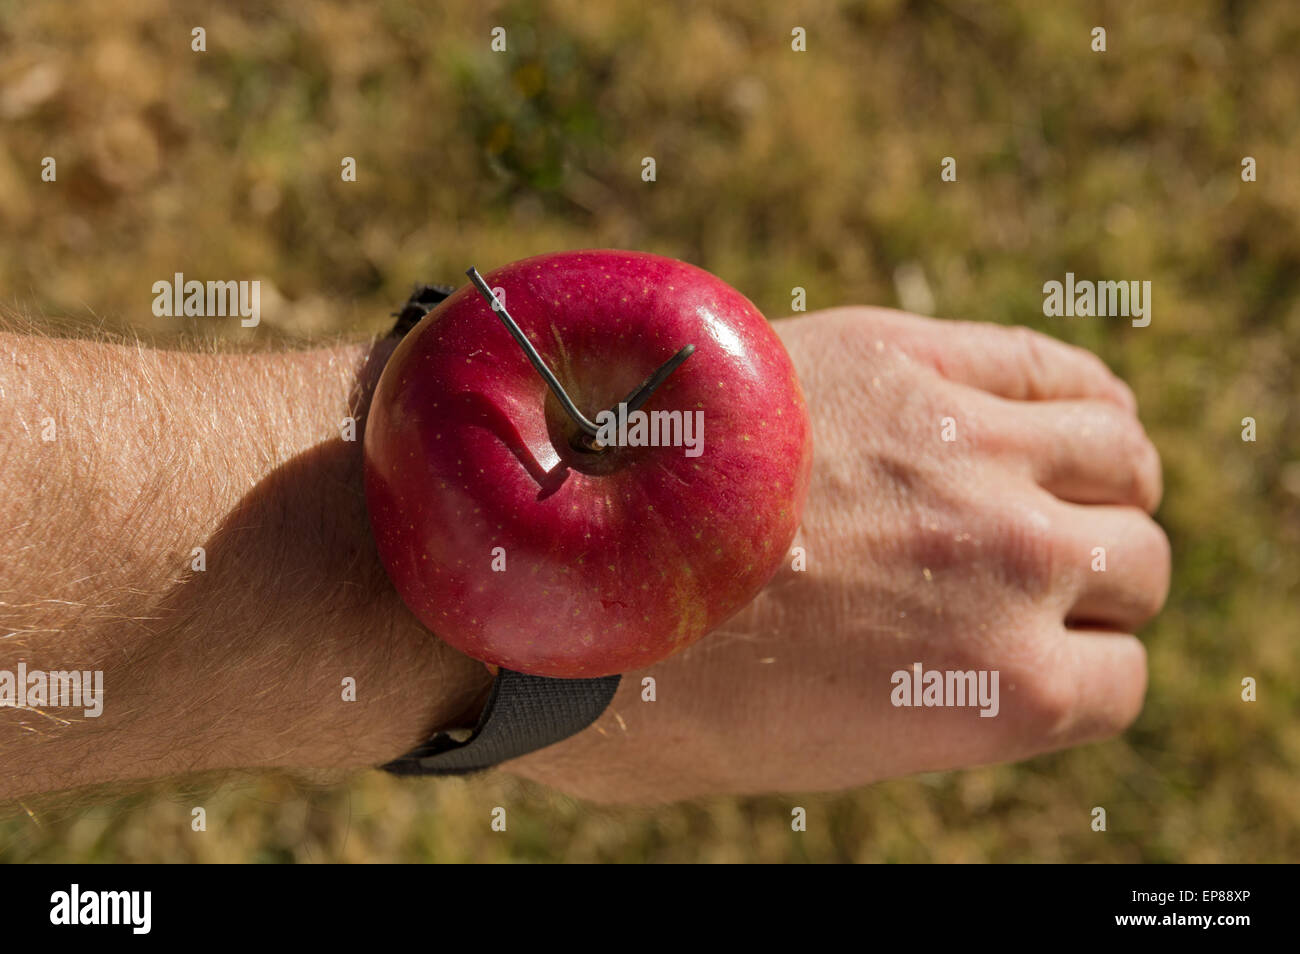 0d879a5cf6 a joke redneck apple watch made out of a red apple strapped to a wrist -